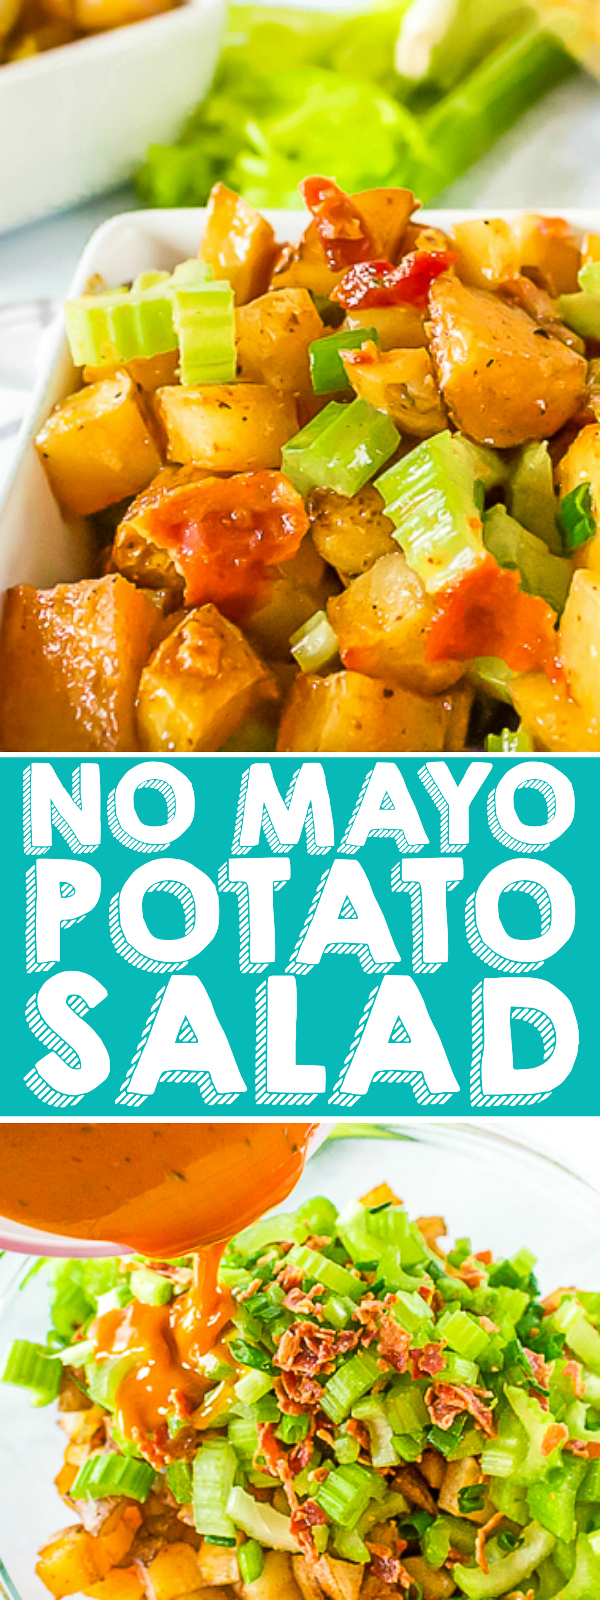 No Mayo Potato Salad with Bacon and Roasted Potatoes - The BEST potato salad for summer BBQs and parties! | The Love Nerds